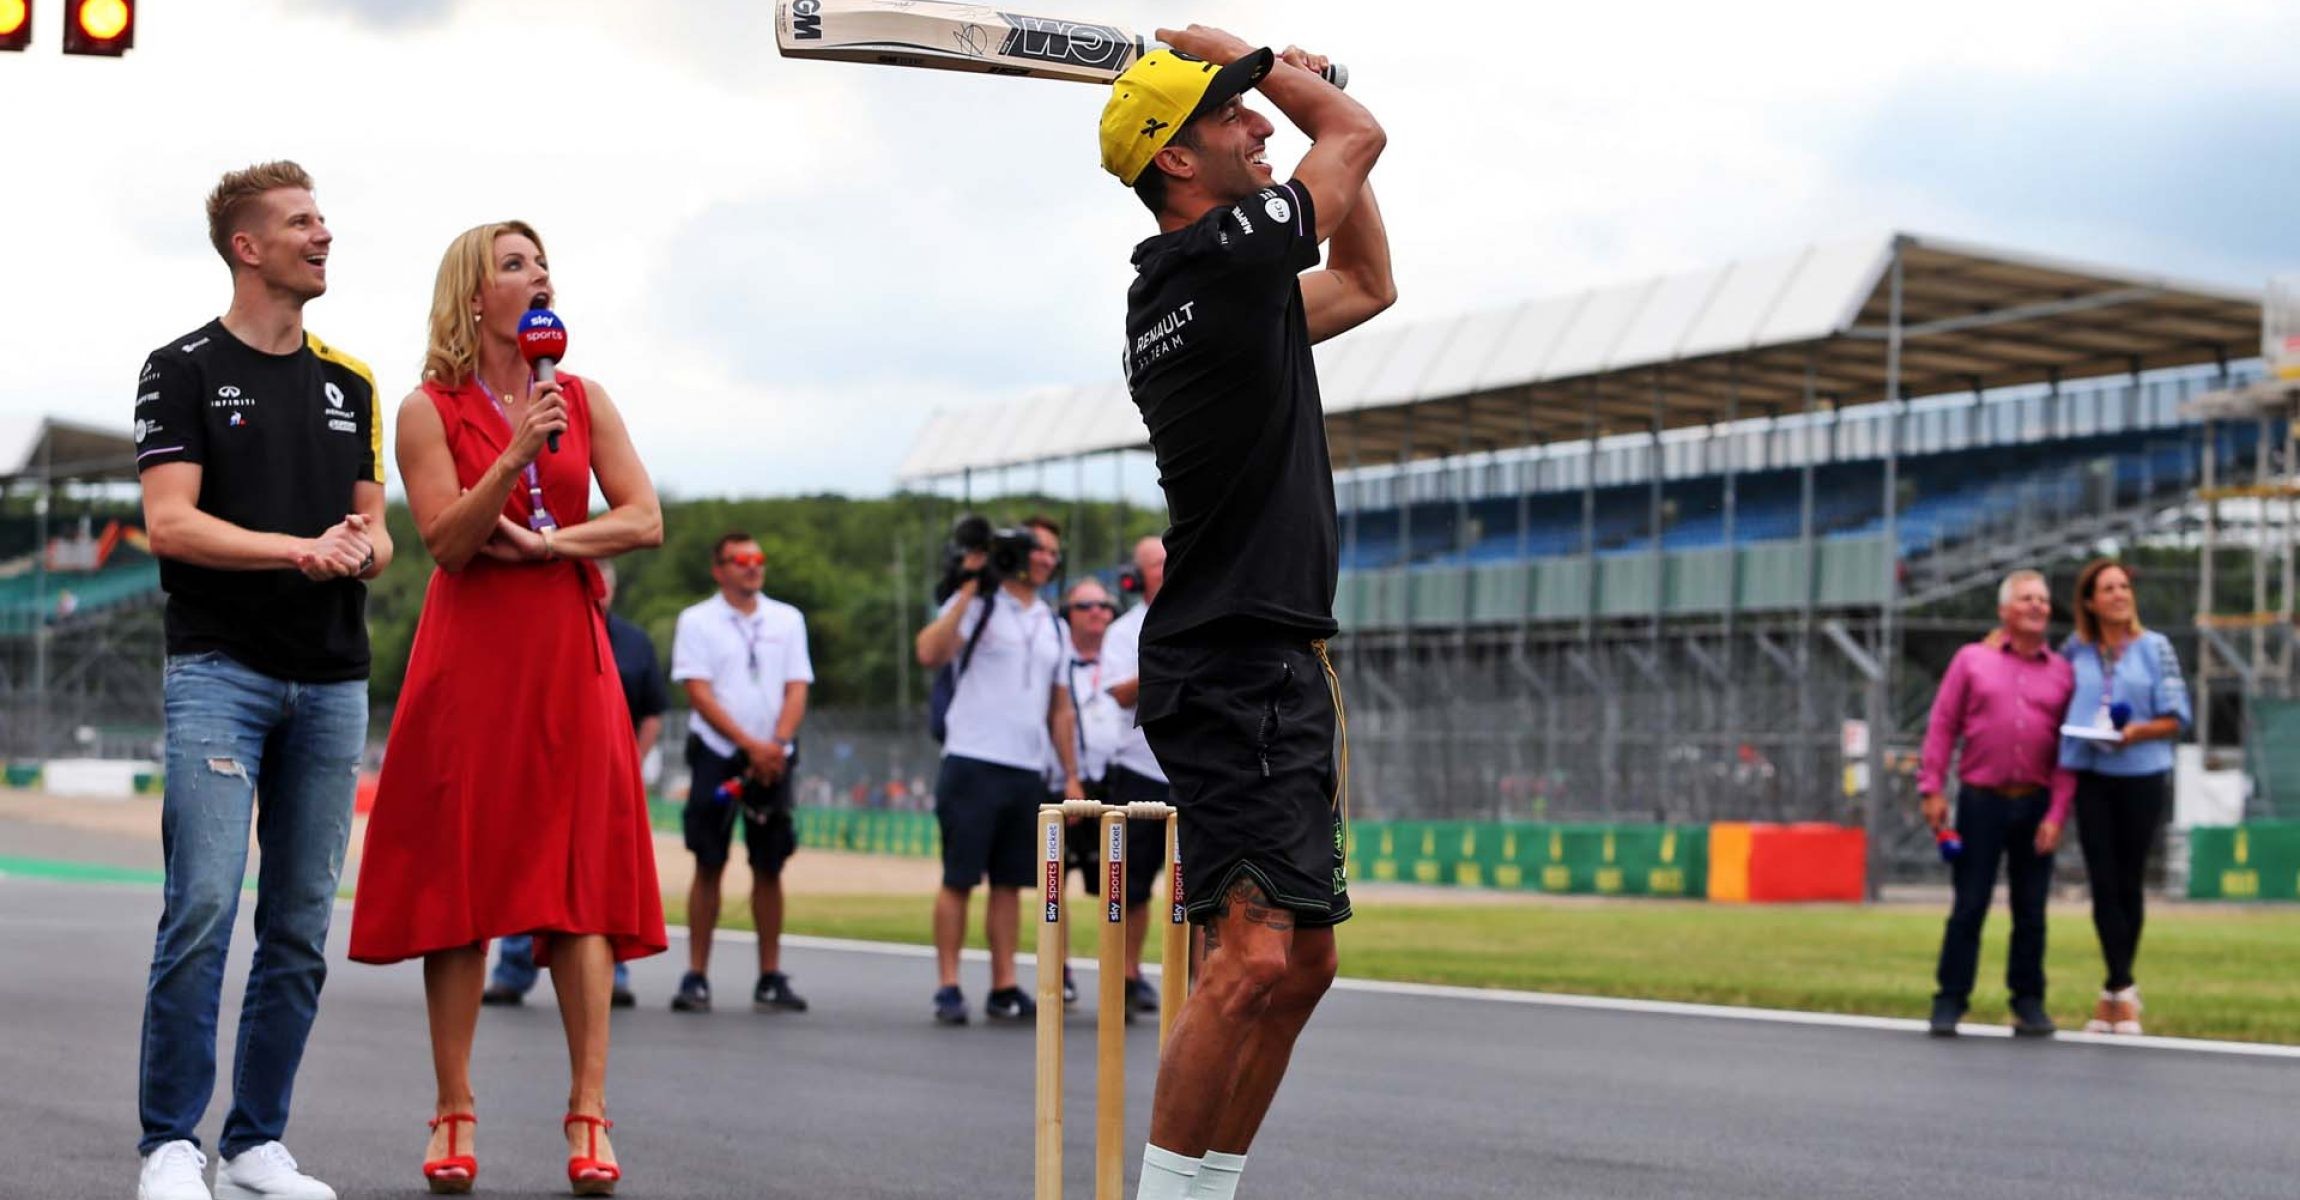 Daniel Ricciardo (AUS) Renault F1 Team and Nico Hulkenberg (GER) Renault F1 Team play cricket. British Grand Prix, Thursday 11th July 2019. Silverstone, England.